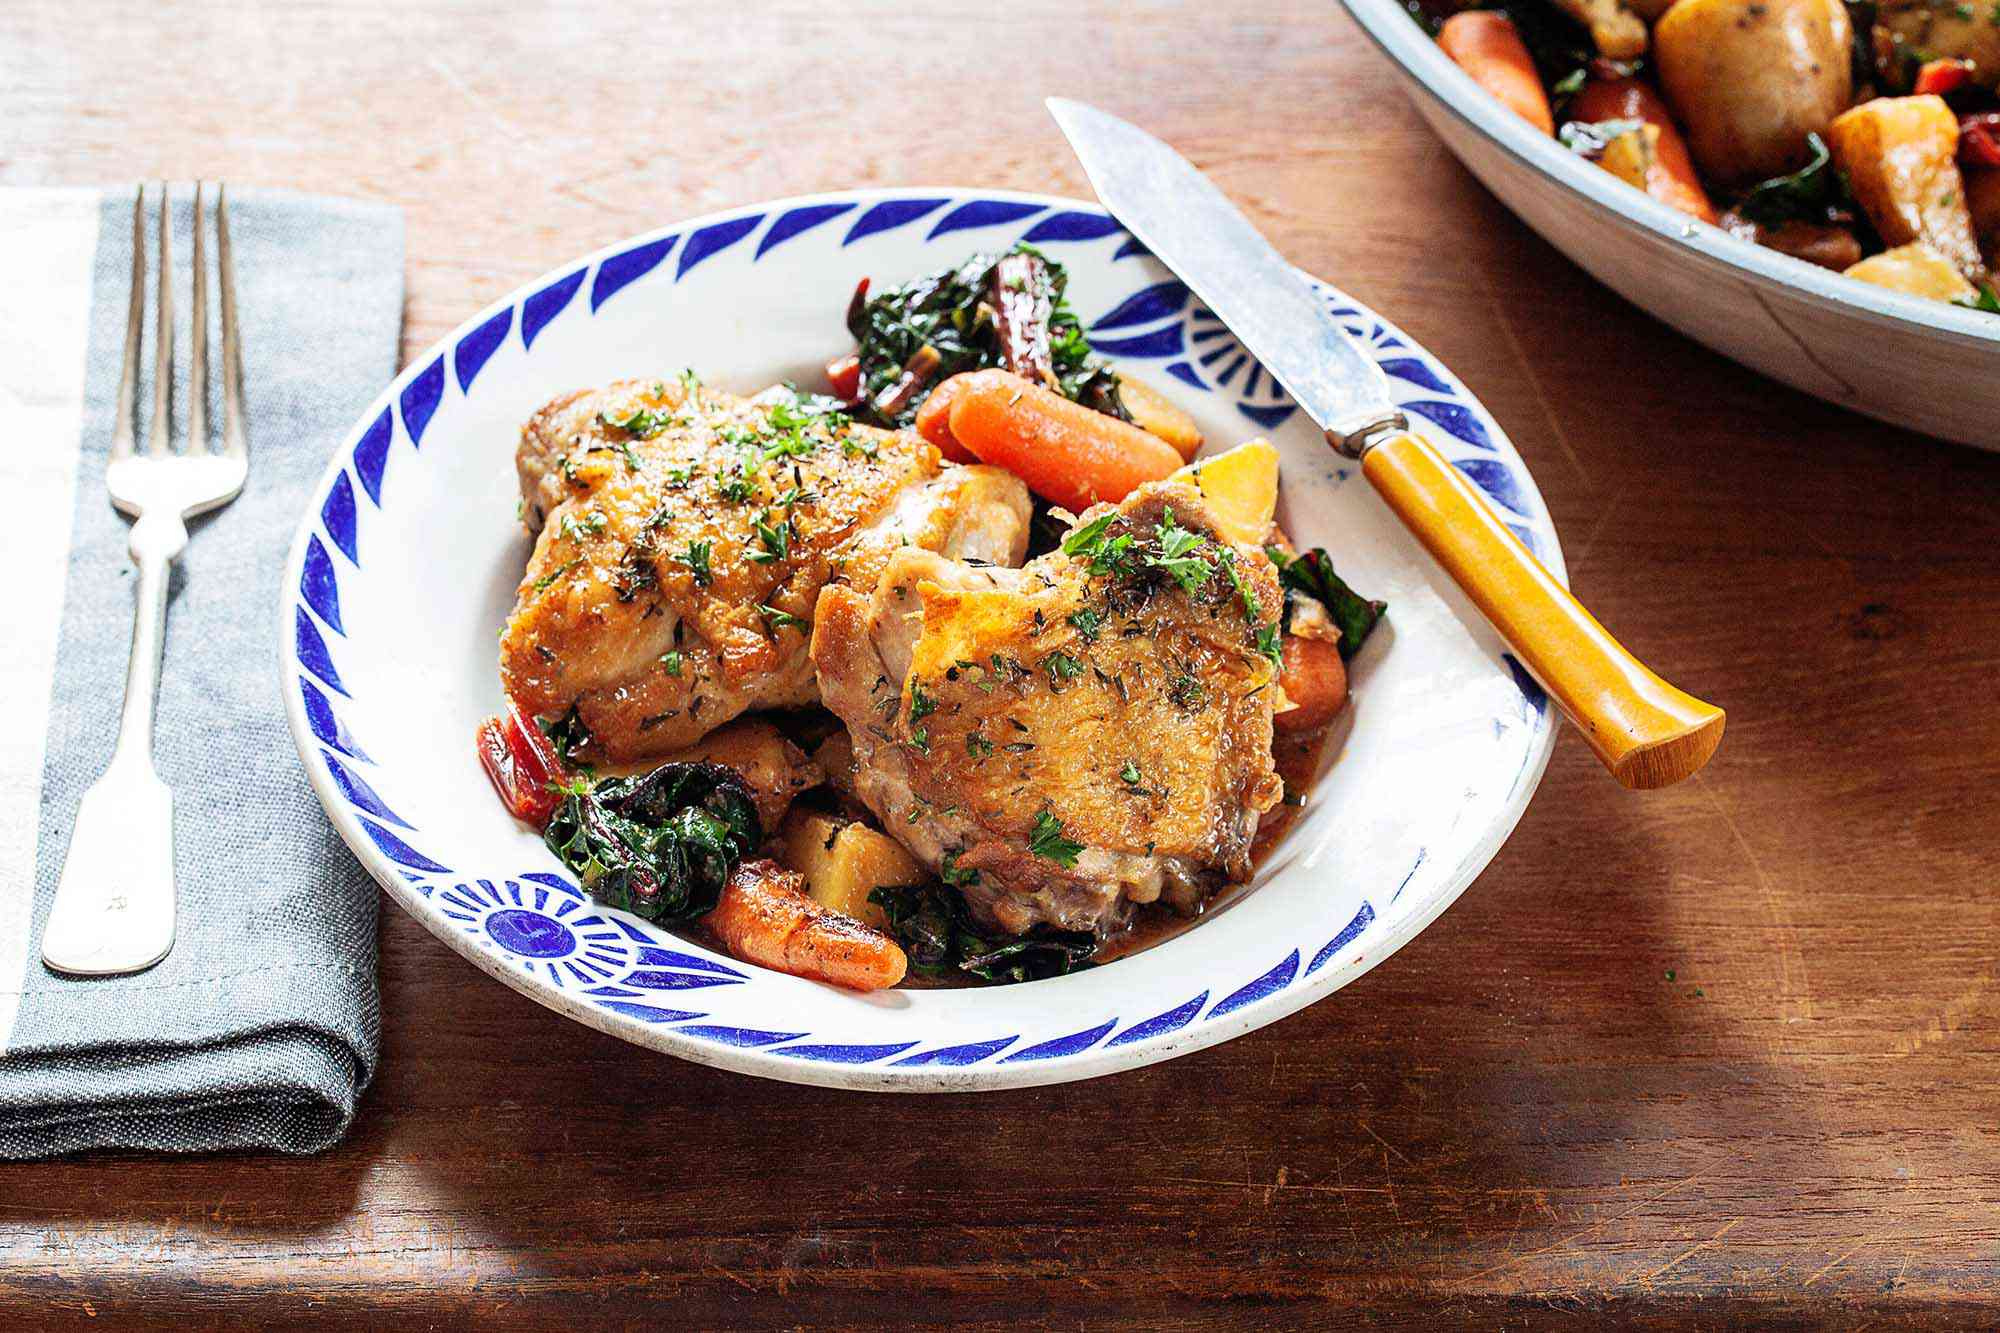 Two crispy skillet chicken thighs with baby carrots and wilted greens. The shallow bowl has a blue pattern around the edge. A yellow handled knife is on the right edge. A folded napkin has a fork on top. More of the skillet chicken thighs with potatoes, carrots and greens in a bowl partially visible in the upper right corner.